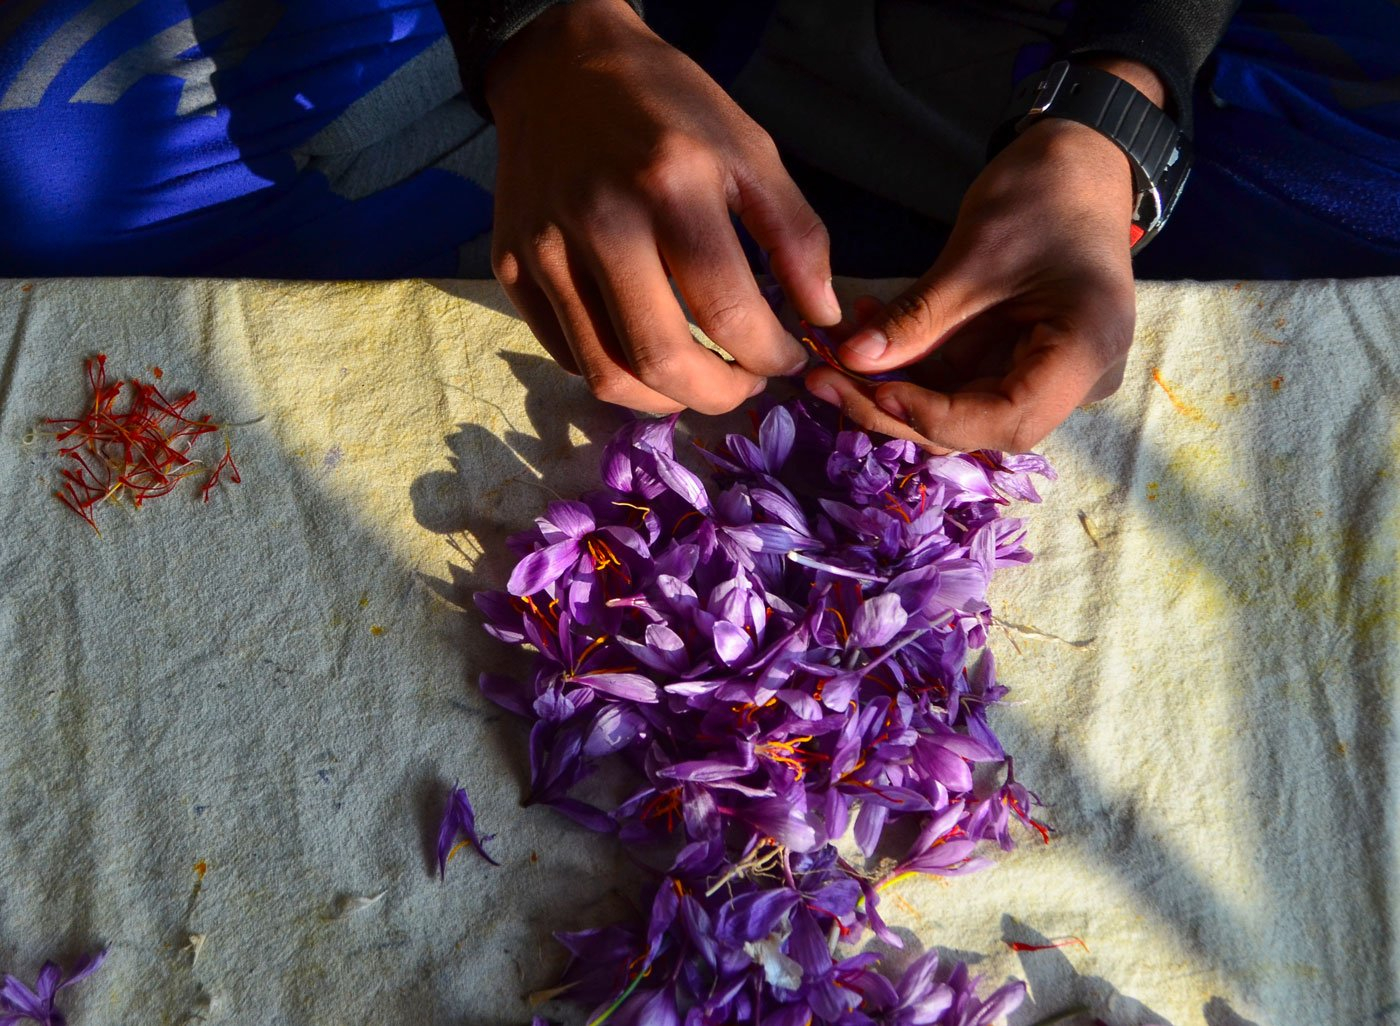 "Abdul Rashid, 55, along with his son Fayaz, extracting the saffron strands from flowers at their home in the Khrew area of Pulwama. He says removing the strand from the flower is an art. ""You have to be very skillful to take out the correct strand from the flower, otherwise you will ruin it."""